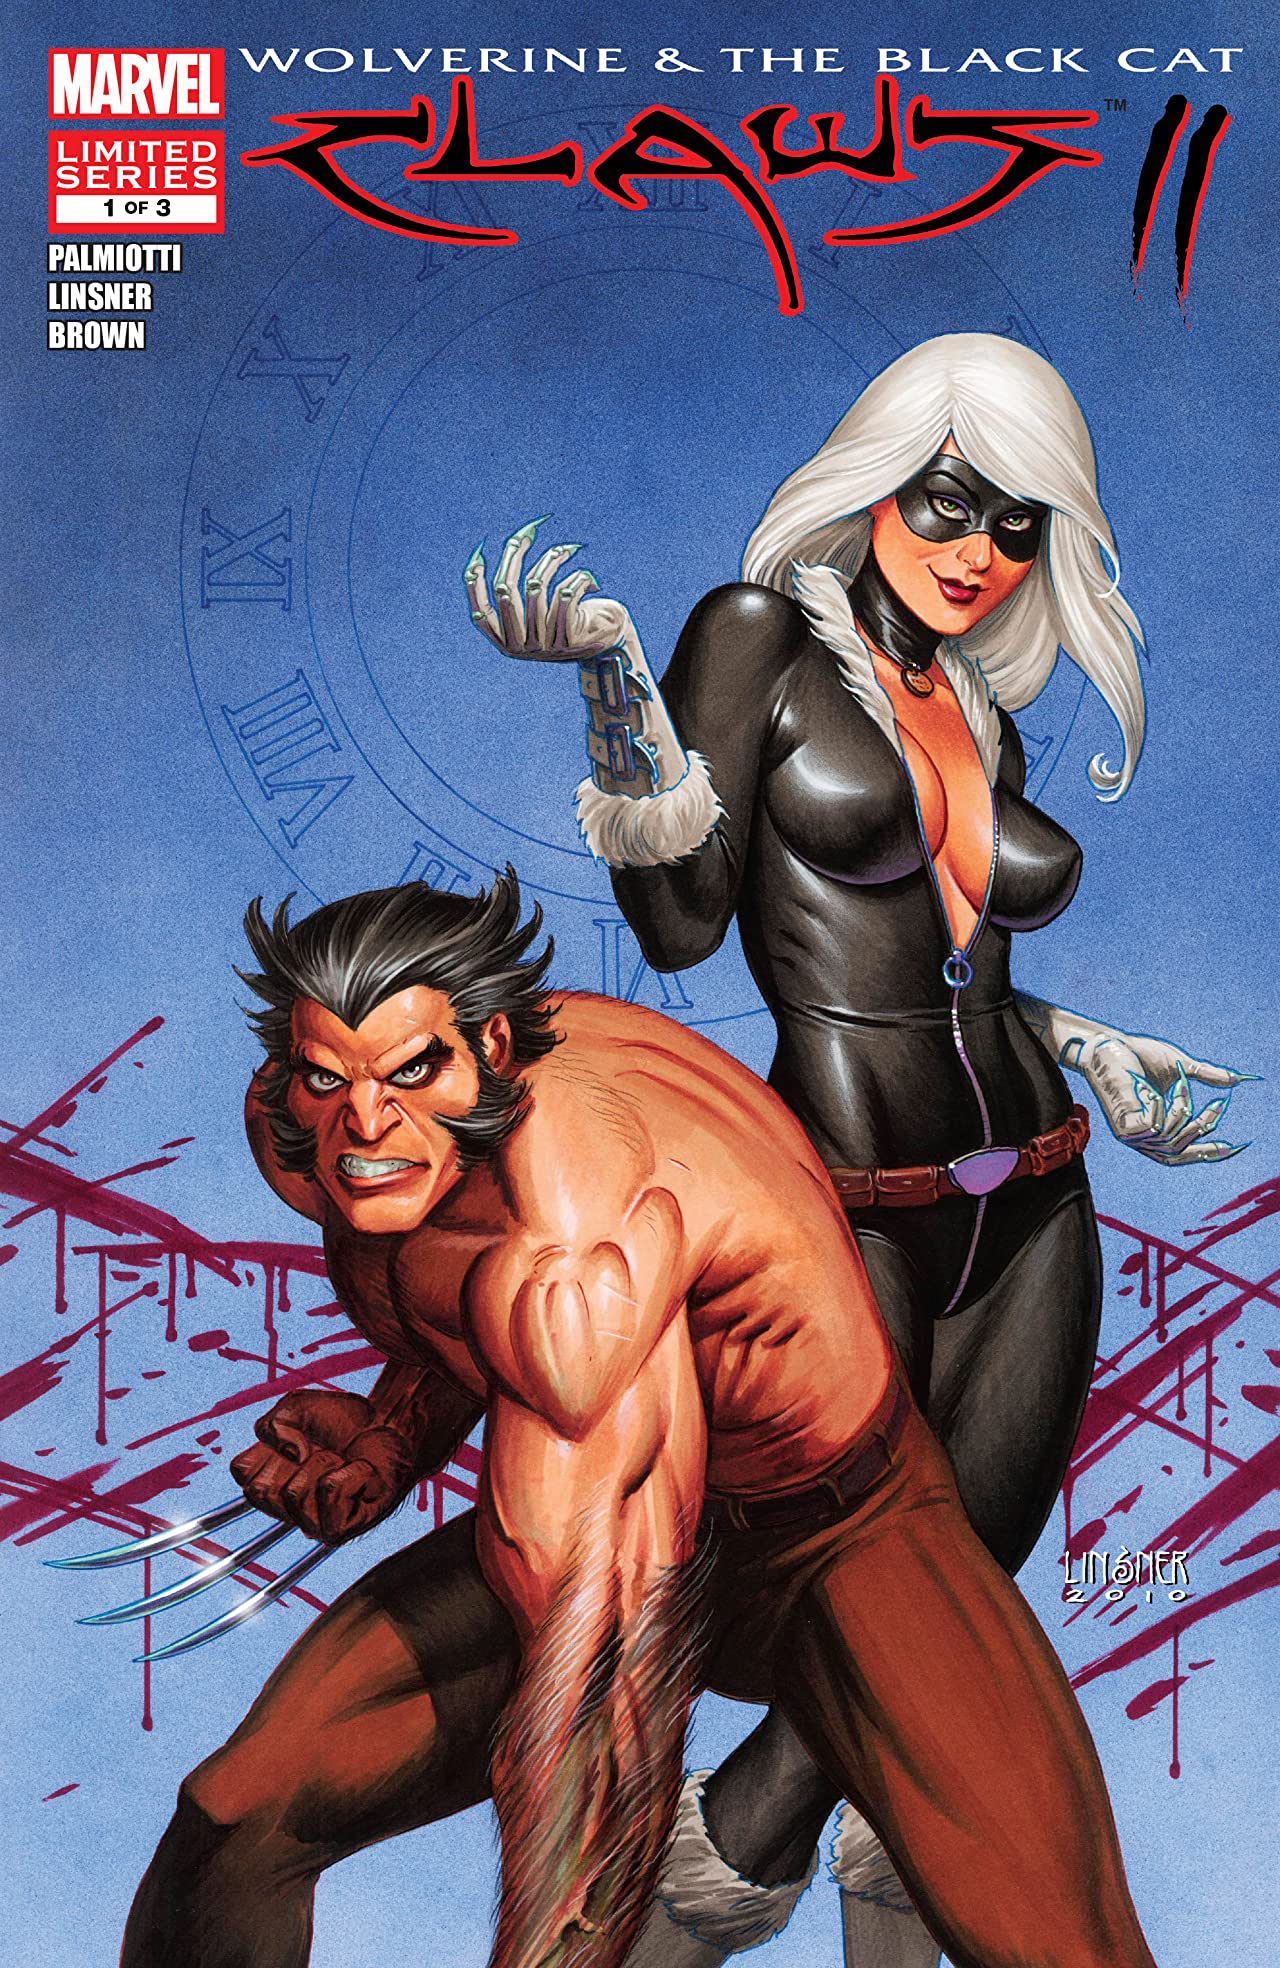 Wolverine & Black Cat: Claws 2 (2011) #1 (of 3)